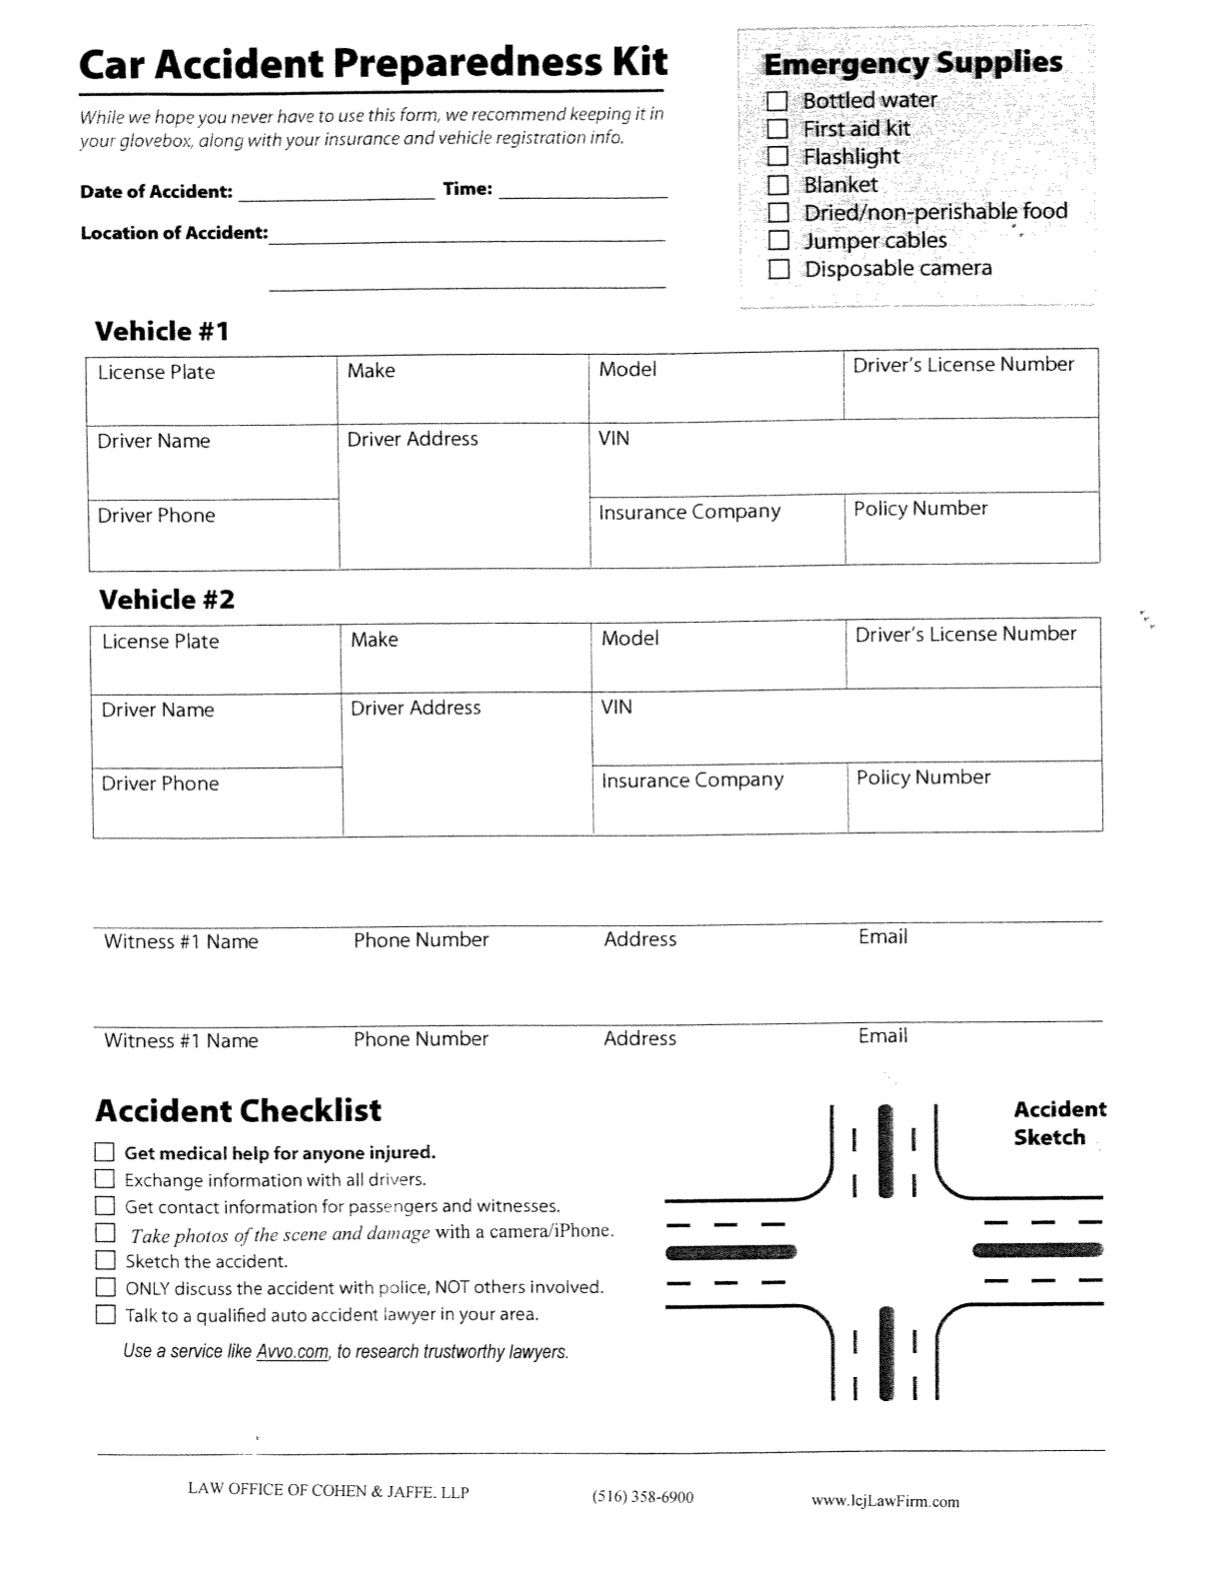 Car Accident Checklist To Keep In Your Glove Box It Helps To Know